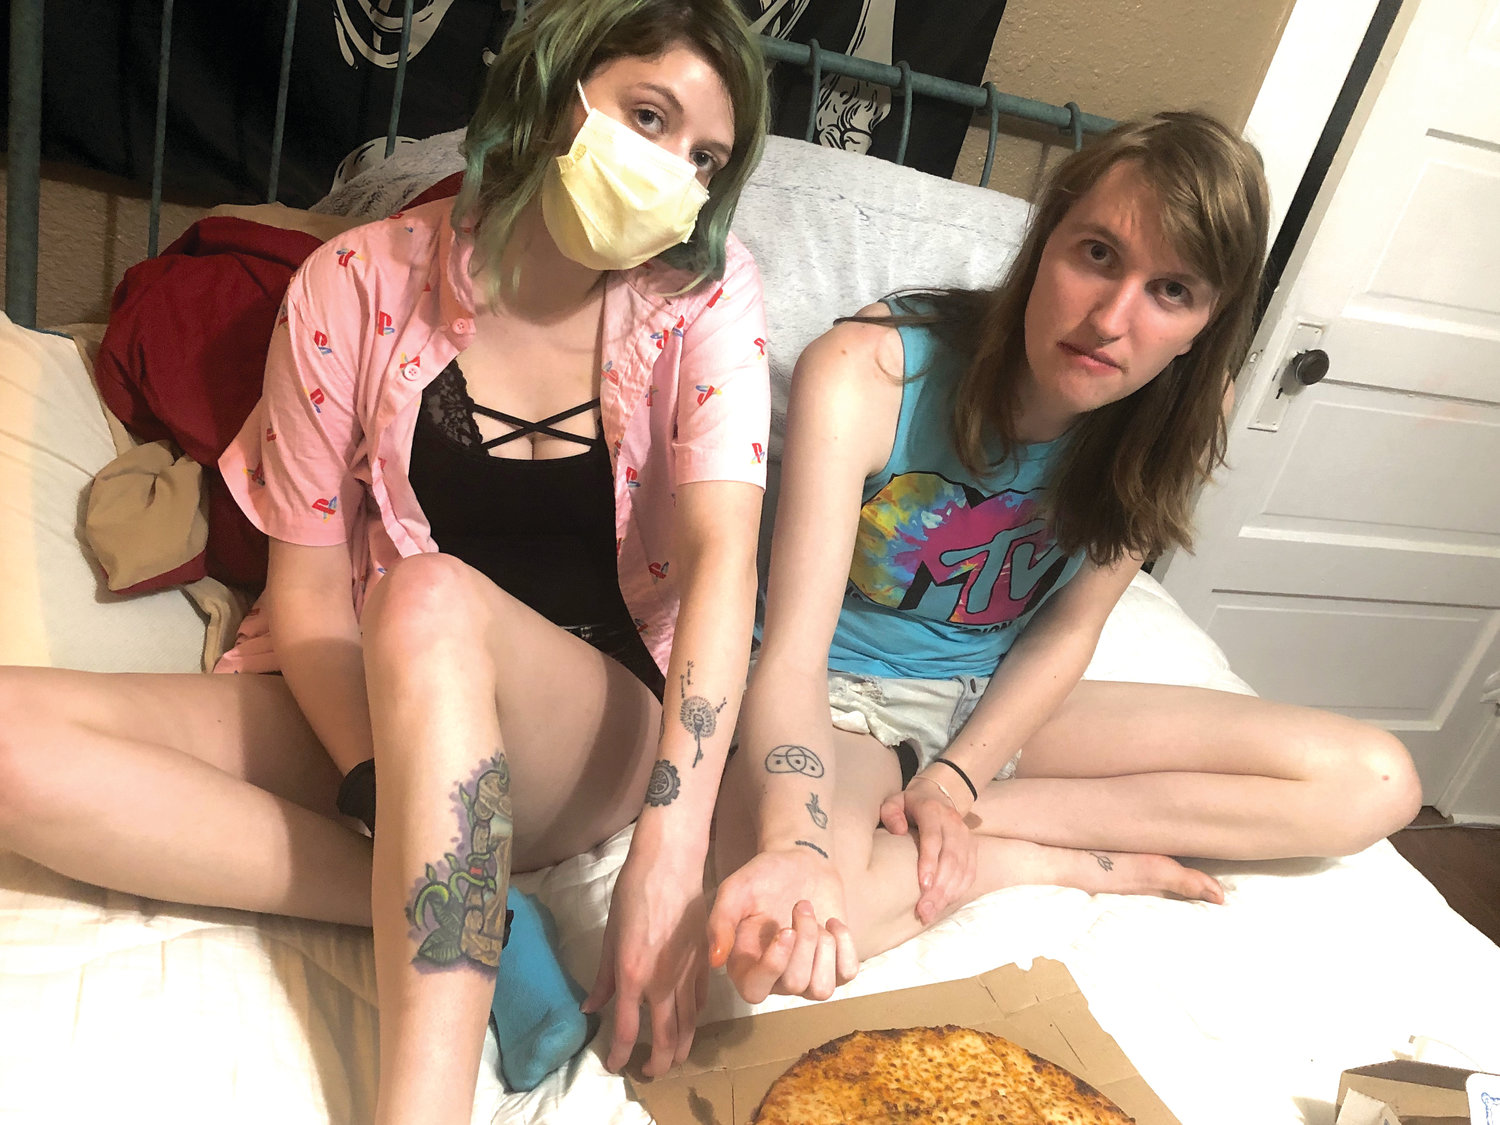 Rowan Giffel (right) and their partner Emily Anderson show off their stick and poke tattoos while enjoying some pizza.